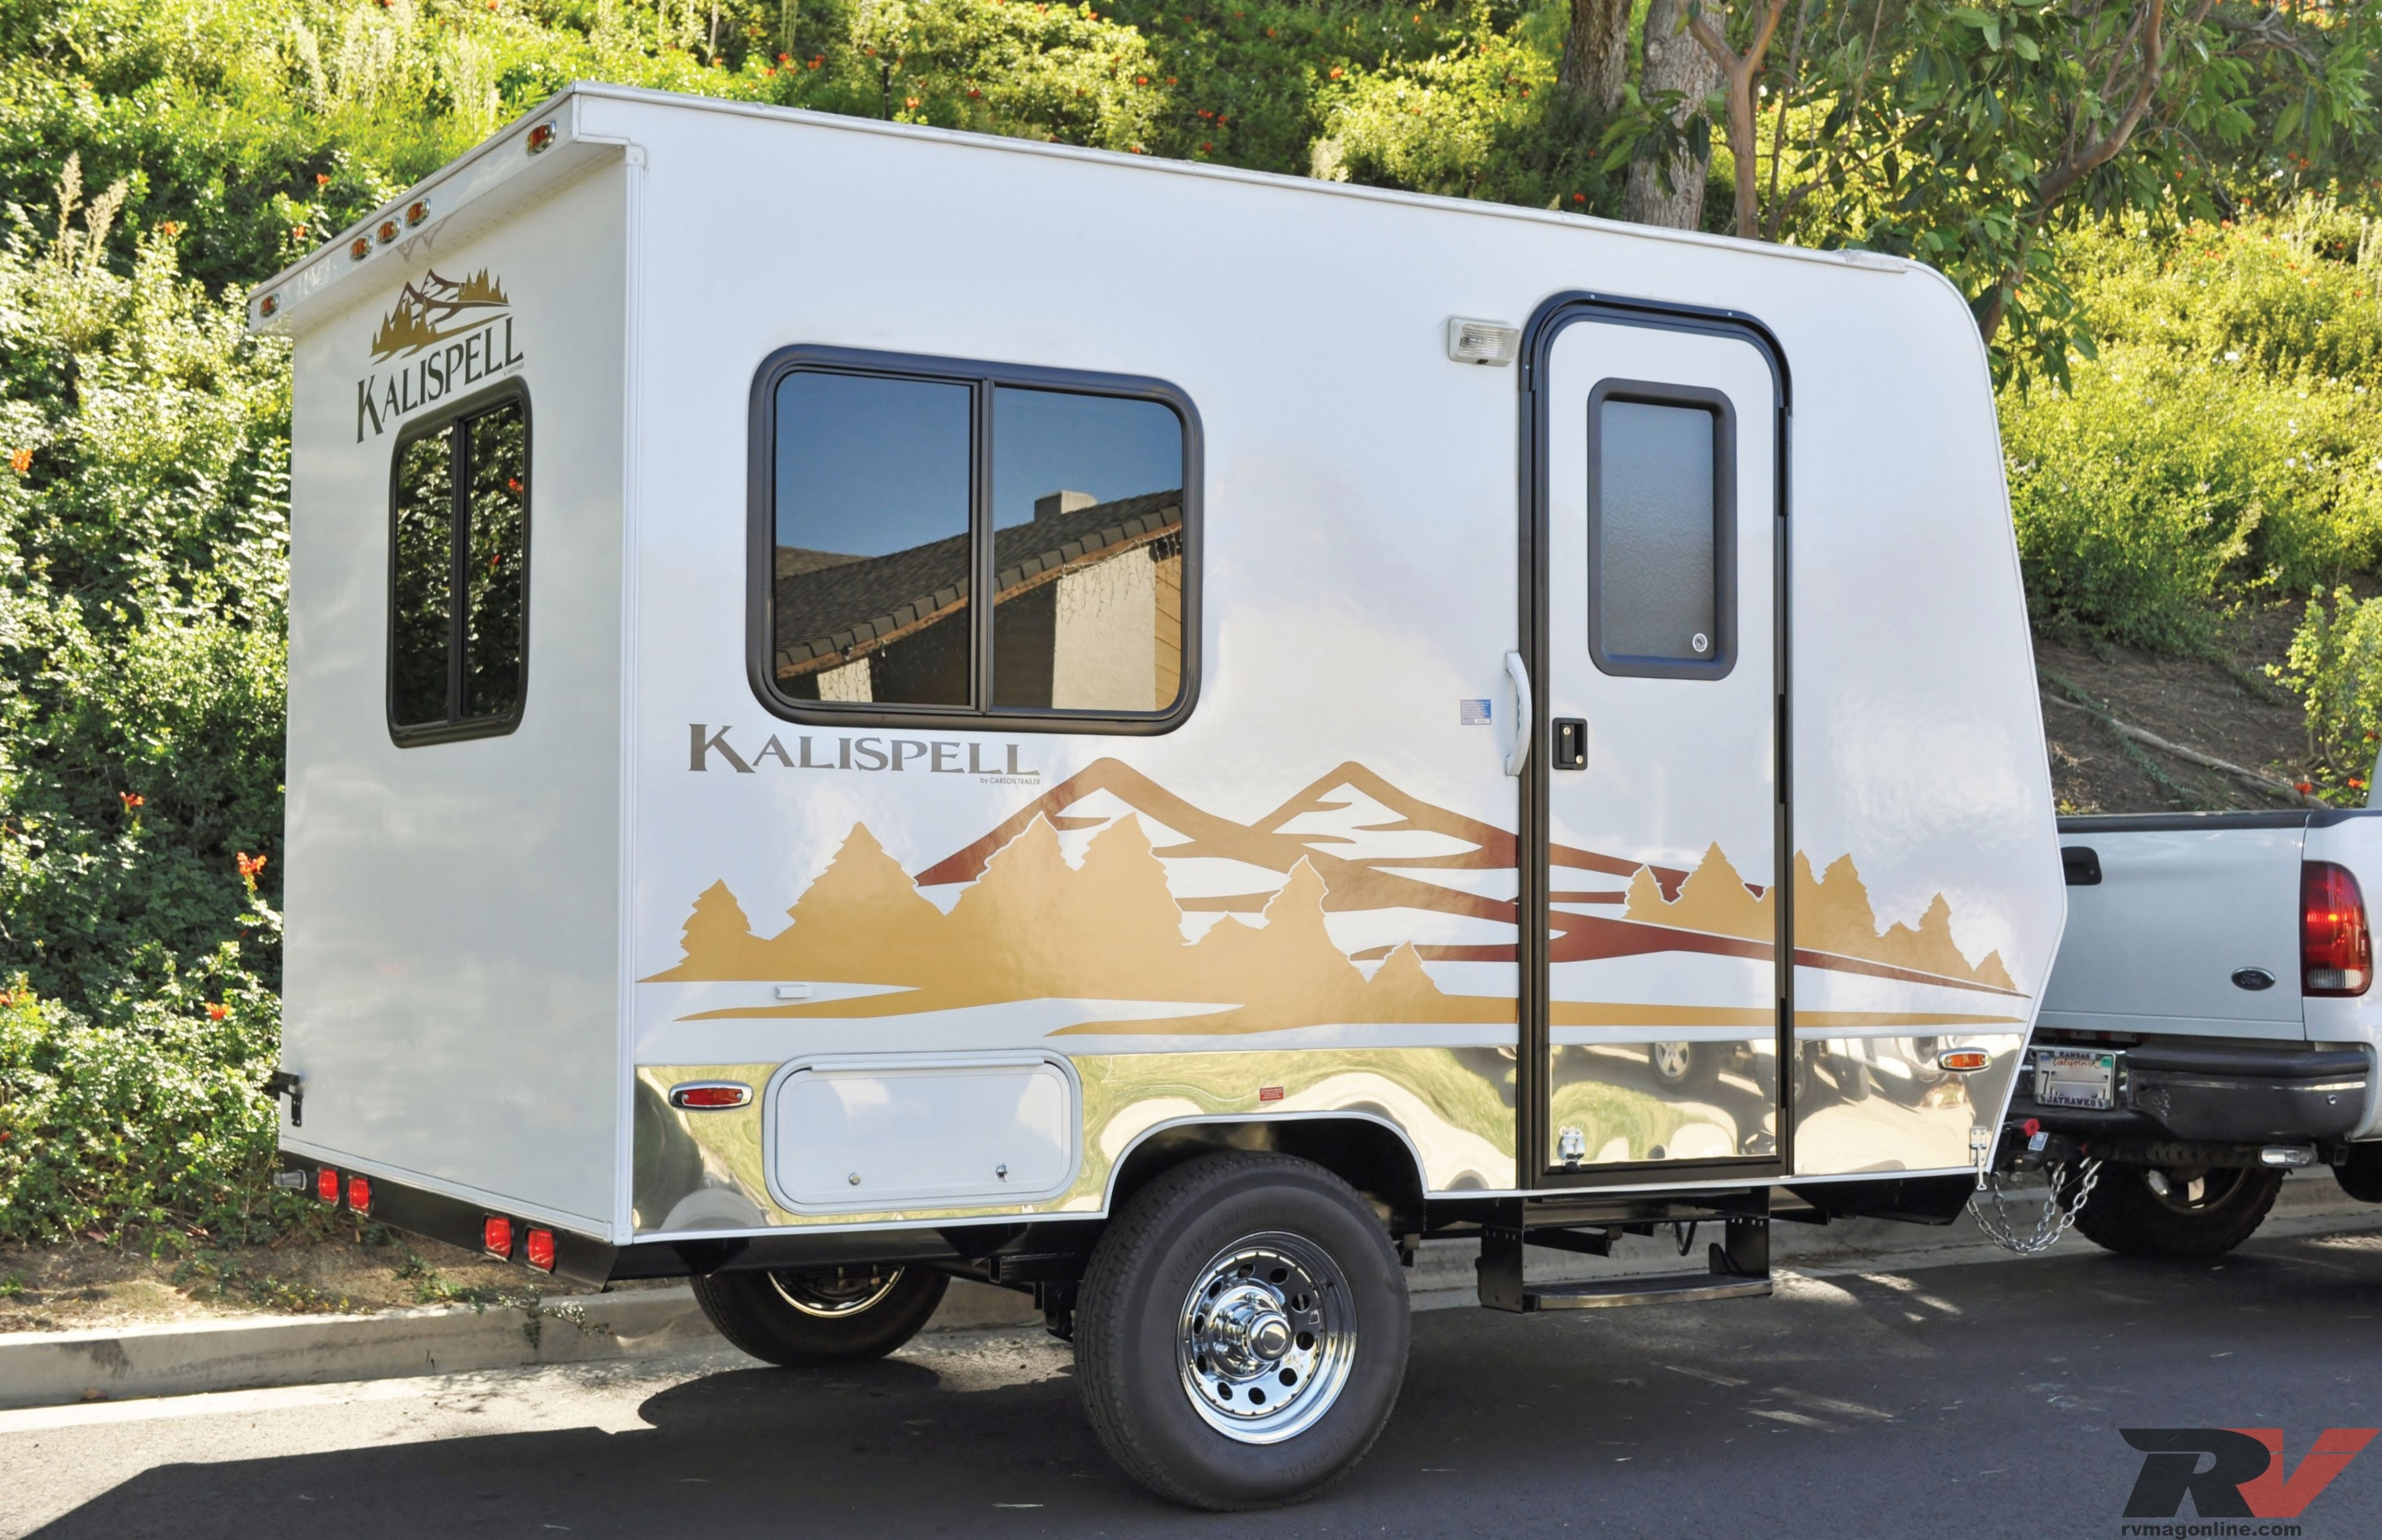 . Best of Small Camping Trailers With Bathrooms   Pics   Small travel